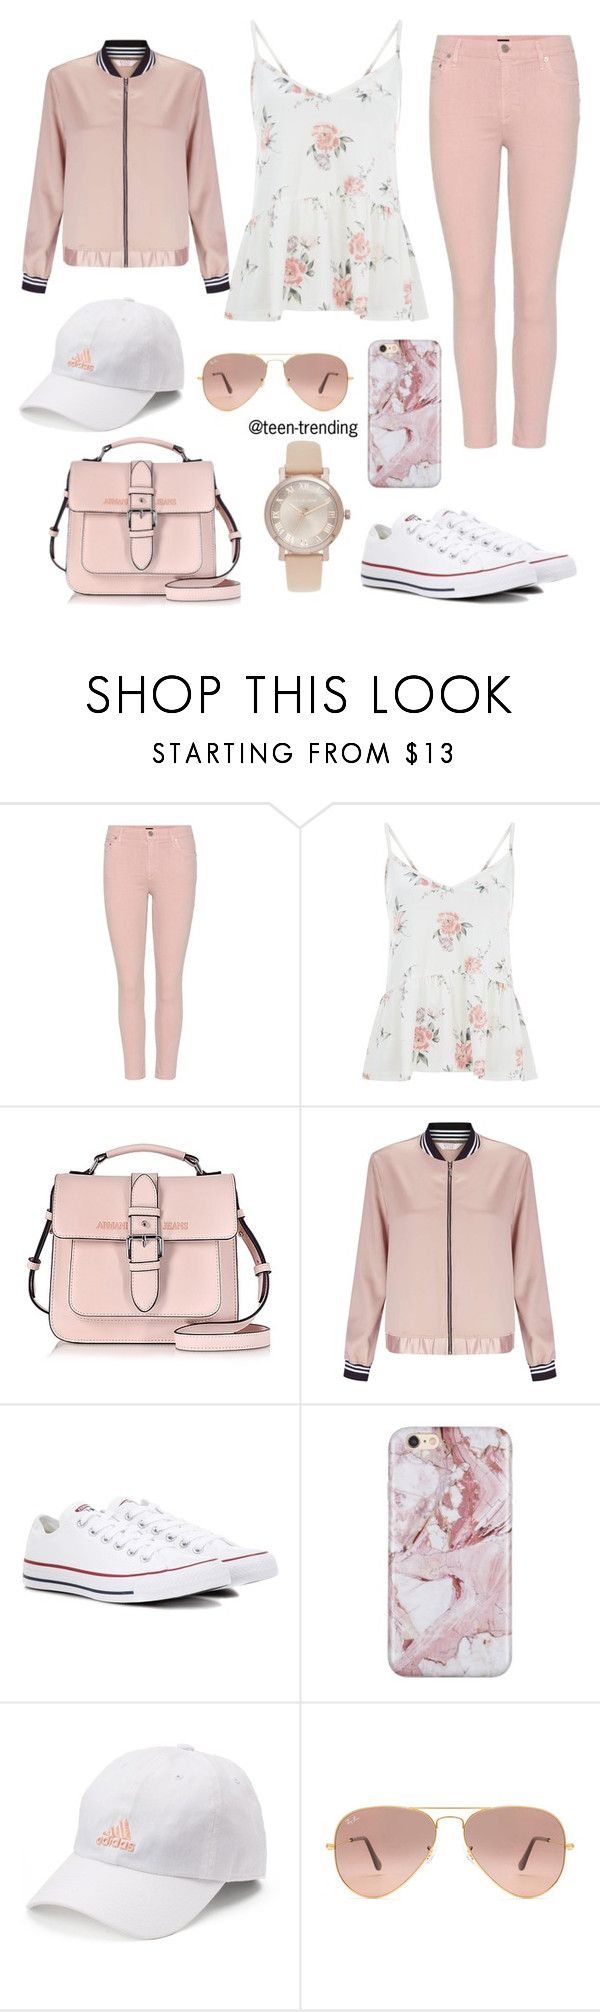 """cute outfit topped off with a silky pink bomber jacket"" by teen-trending ❤ liked on Polyvore featuring Citizens of Humanity, Armani Jeans, Miss Selfridge, Converse, adidas, Ray-Ban and Michael Kors"